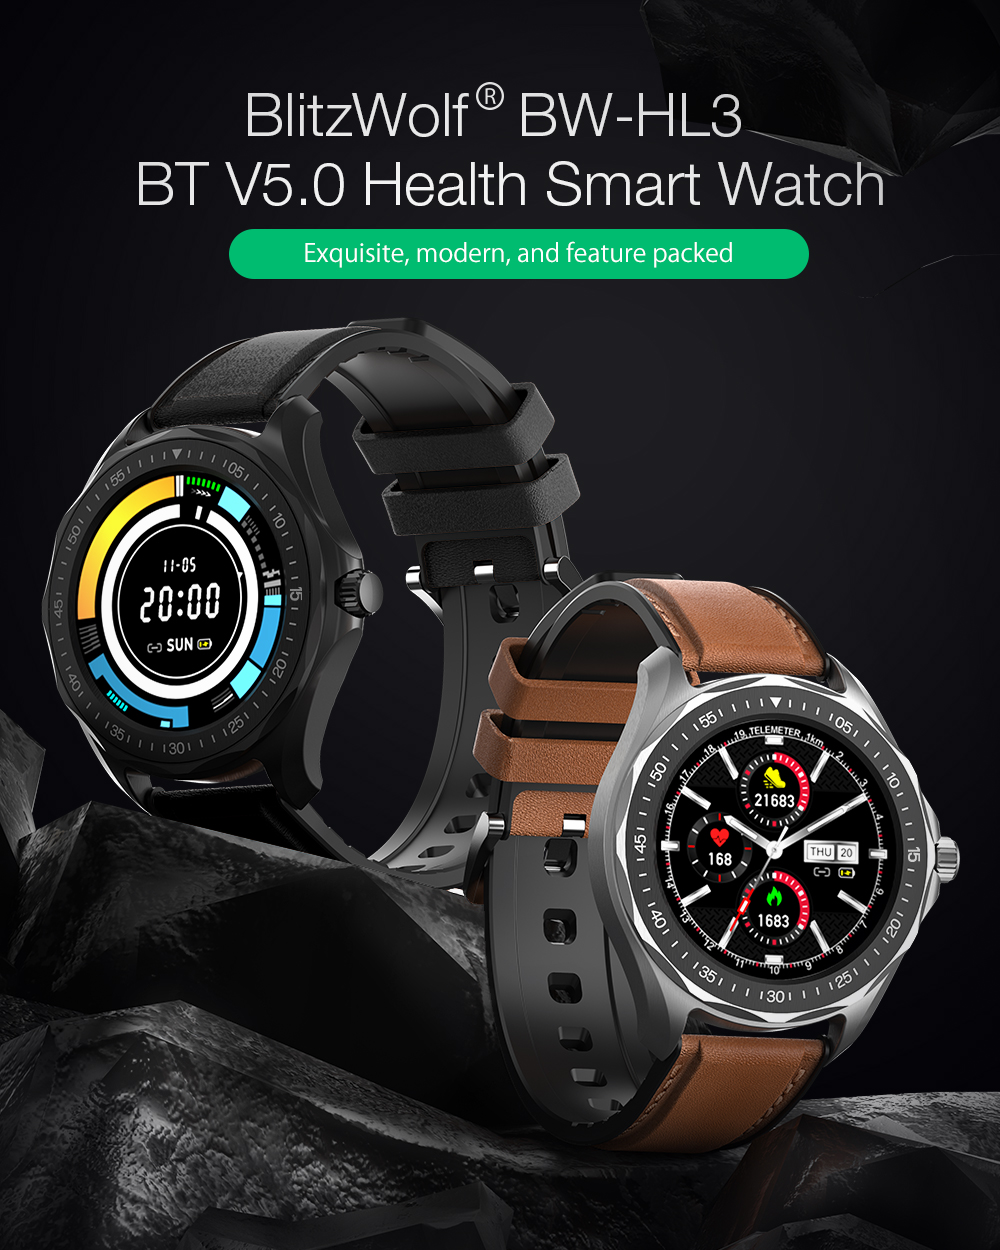 Blitzwolf BW-HL3 smart watch